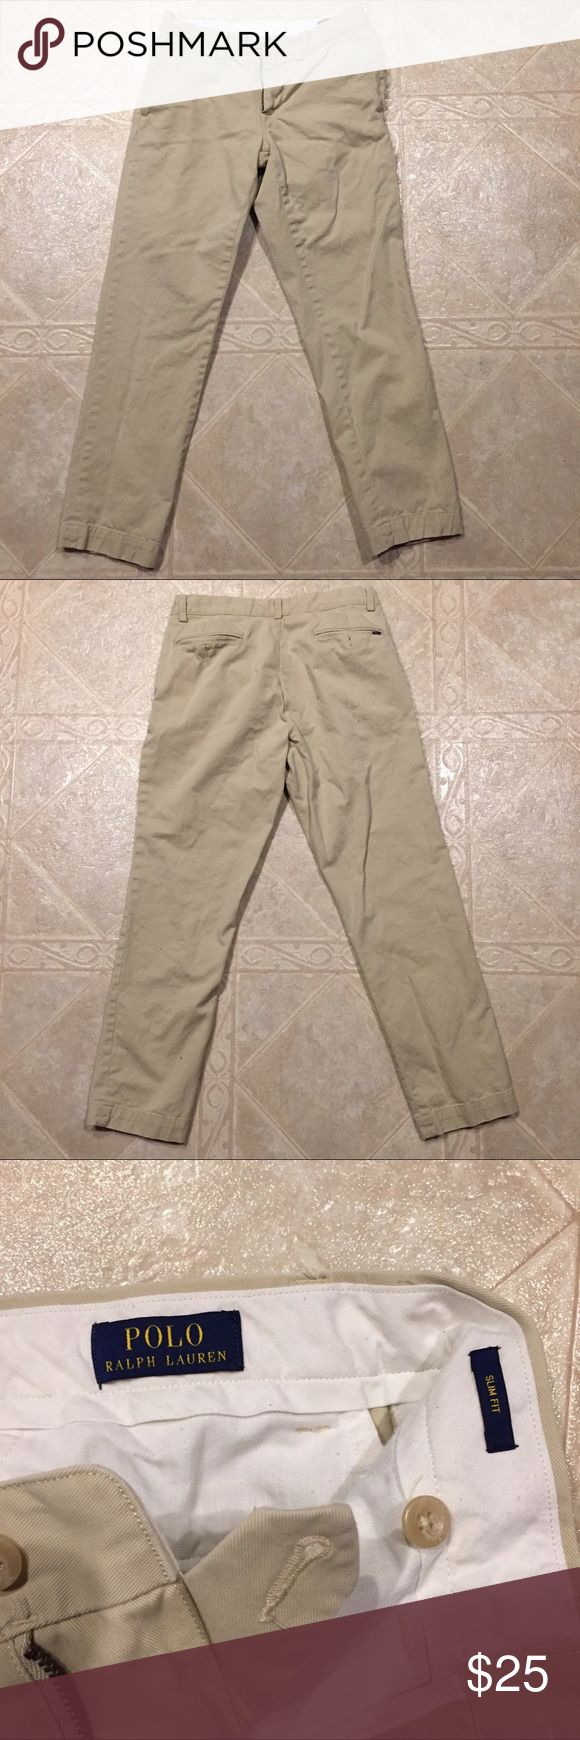 Polo Ralph Lauren slim fit Khaki Chino pant 30x30 Men's slim fit khaki chino pants from Polo Ralph Lauren.  Great condition, other than a few marks on the right back pocket. Polo by Ralph Lauren Pants Chinos & Khakis